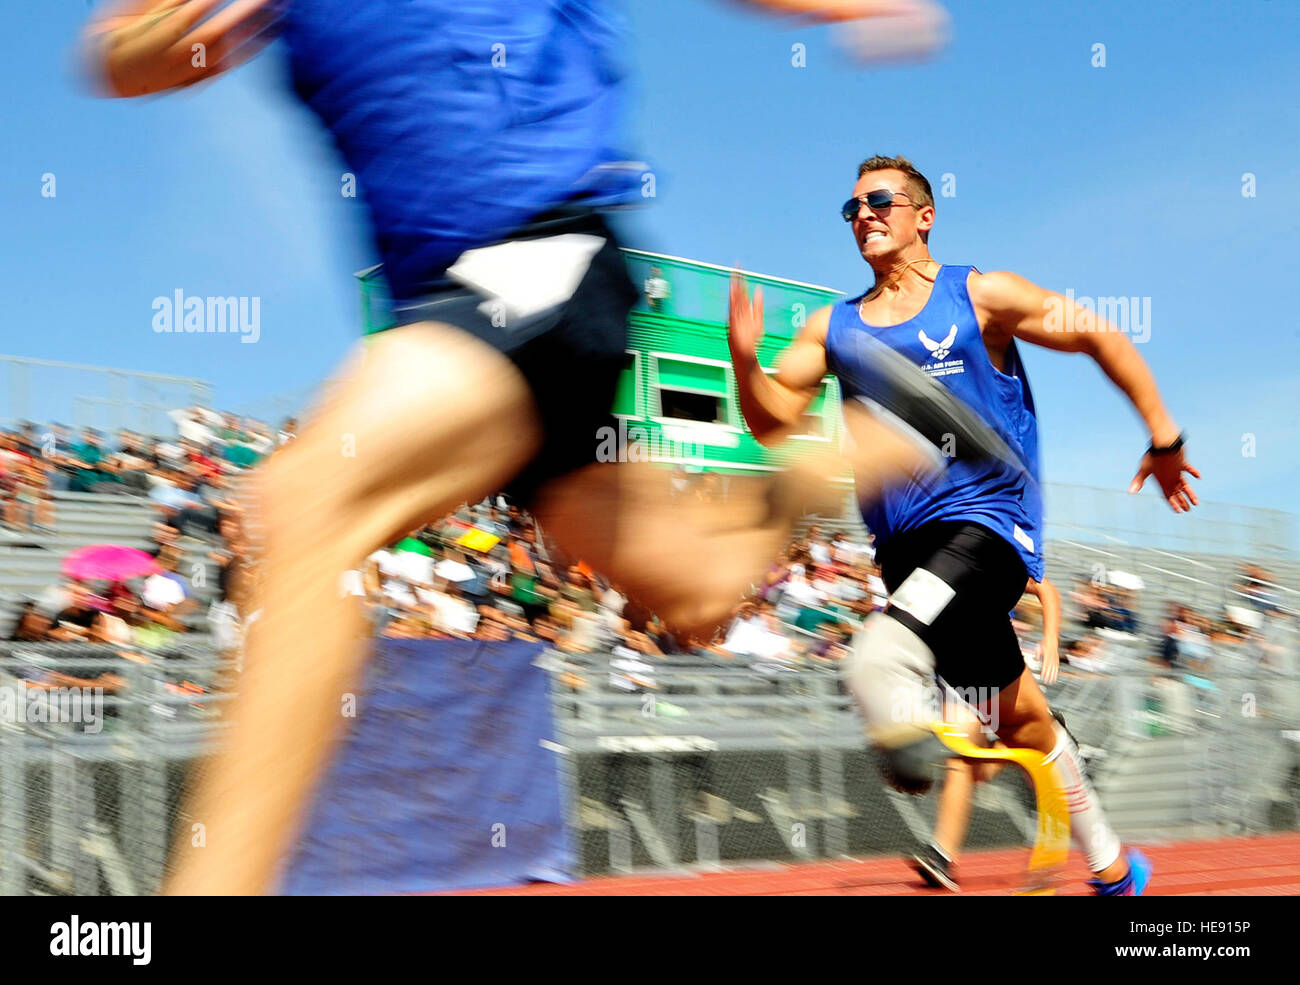 Wounded warrior Retired Senior Airman Gideon Connelly performs the the 100-meter race at Rancho High School, Las - Stock Image